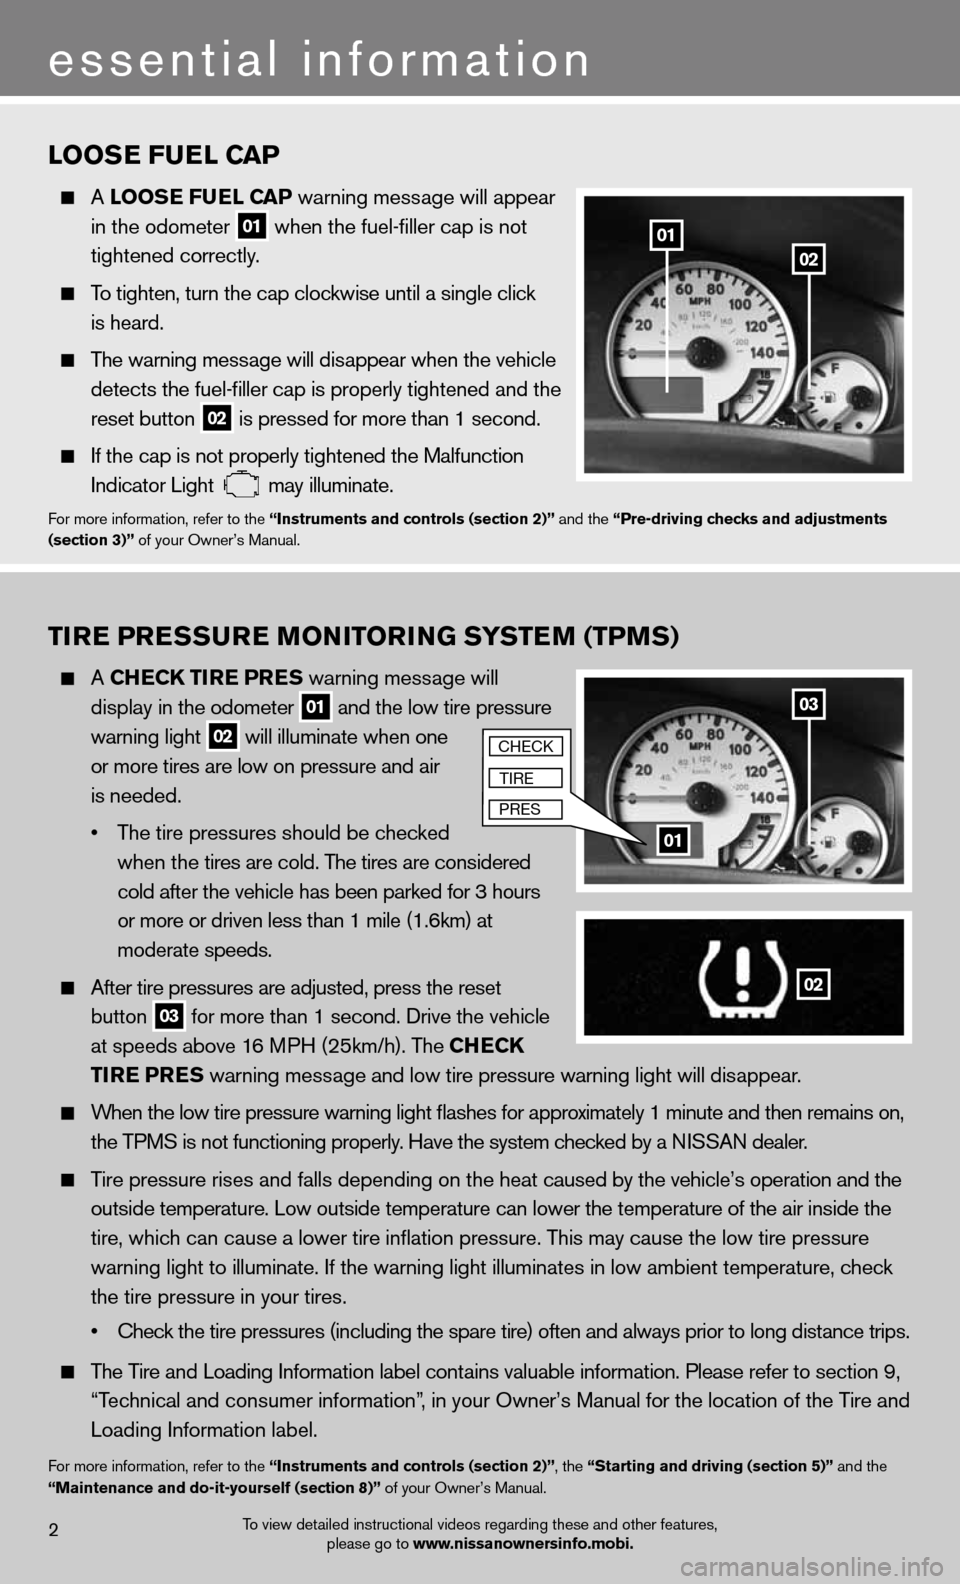 NISSAN XTERRA 2012 N50 / 2.G Quick Reference Guide 2 essential information 0201 03 01 loosE fuEl C aP   A  loos E fuEl CaP warning message will appear      in the odometer   01 when the fuel-filler cap is not      tightened correctly.     To tighten,